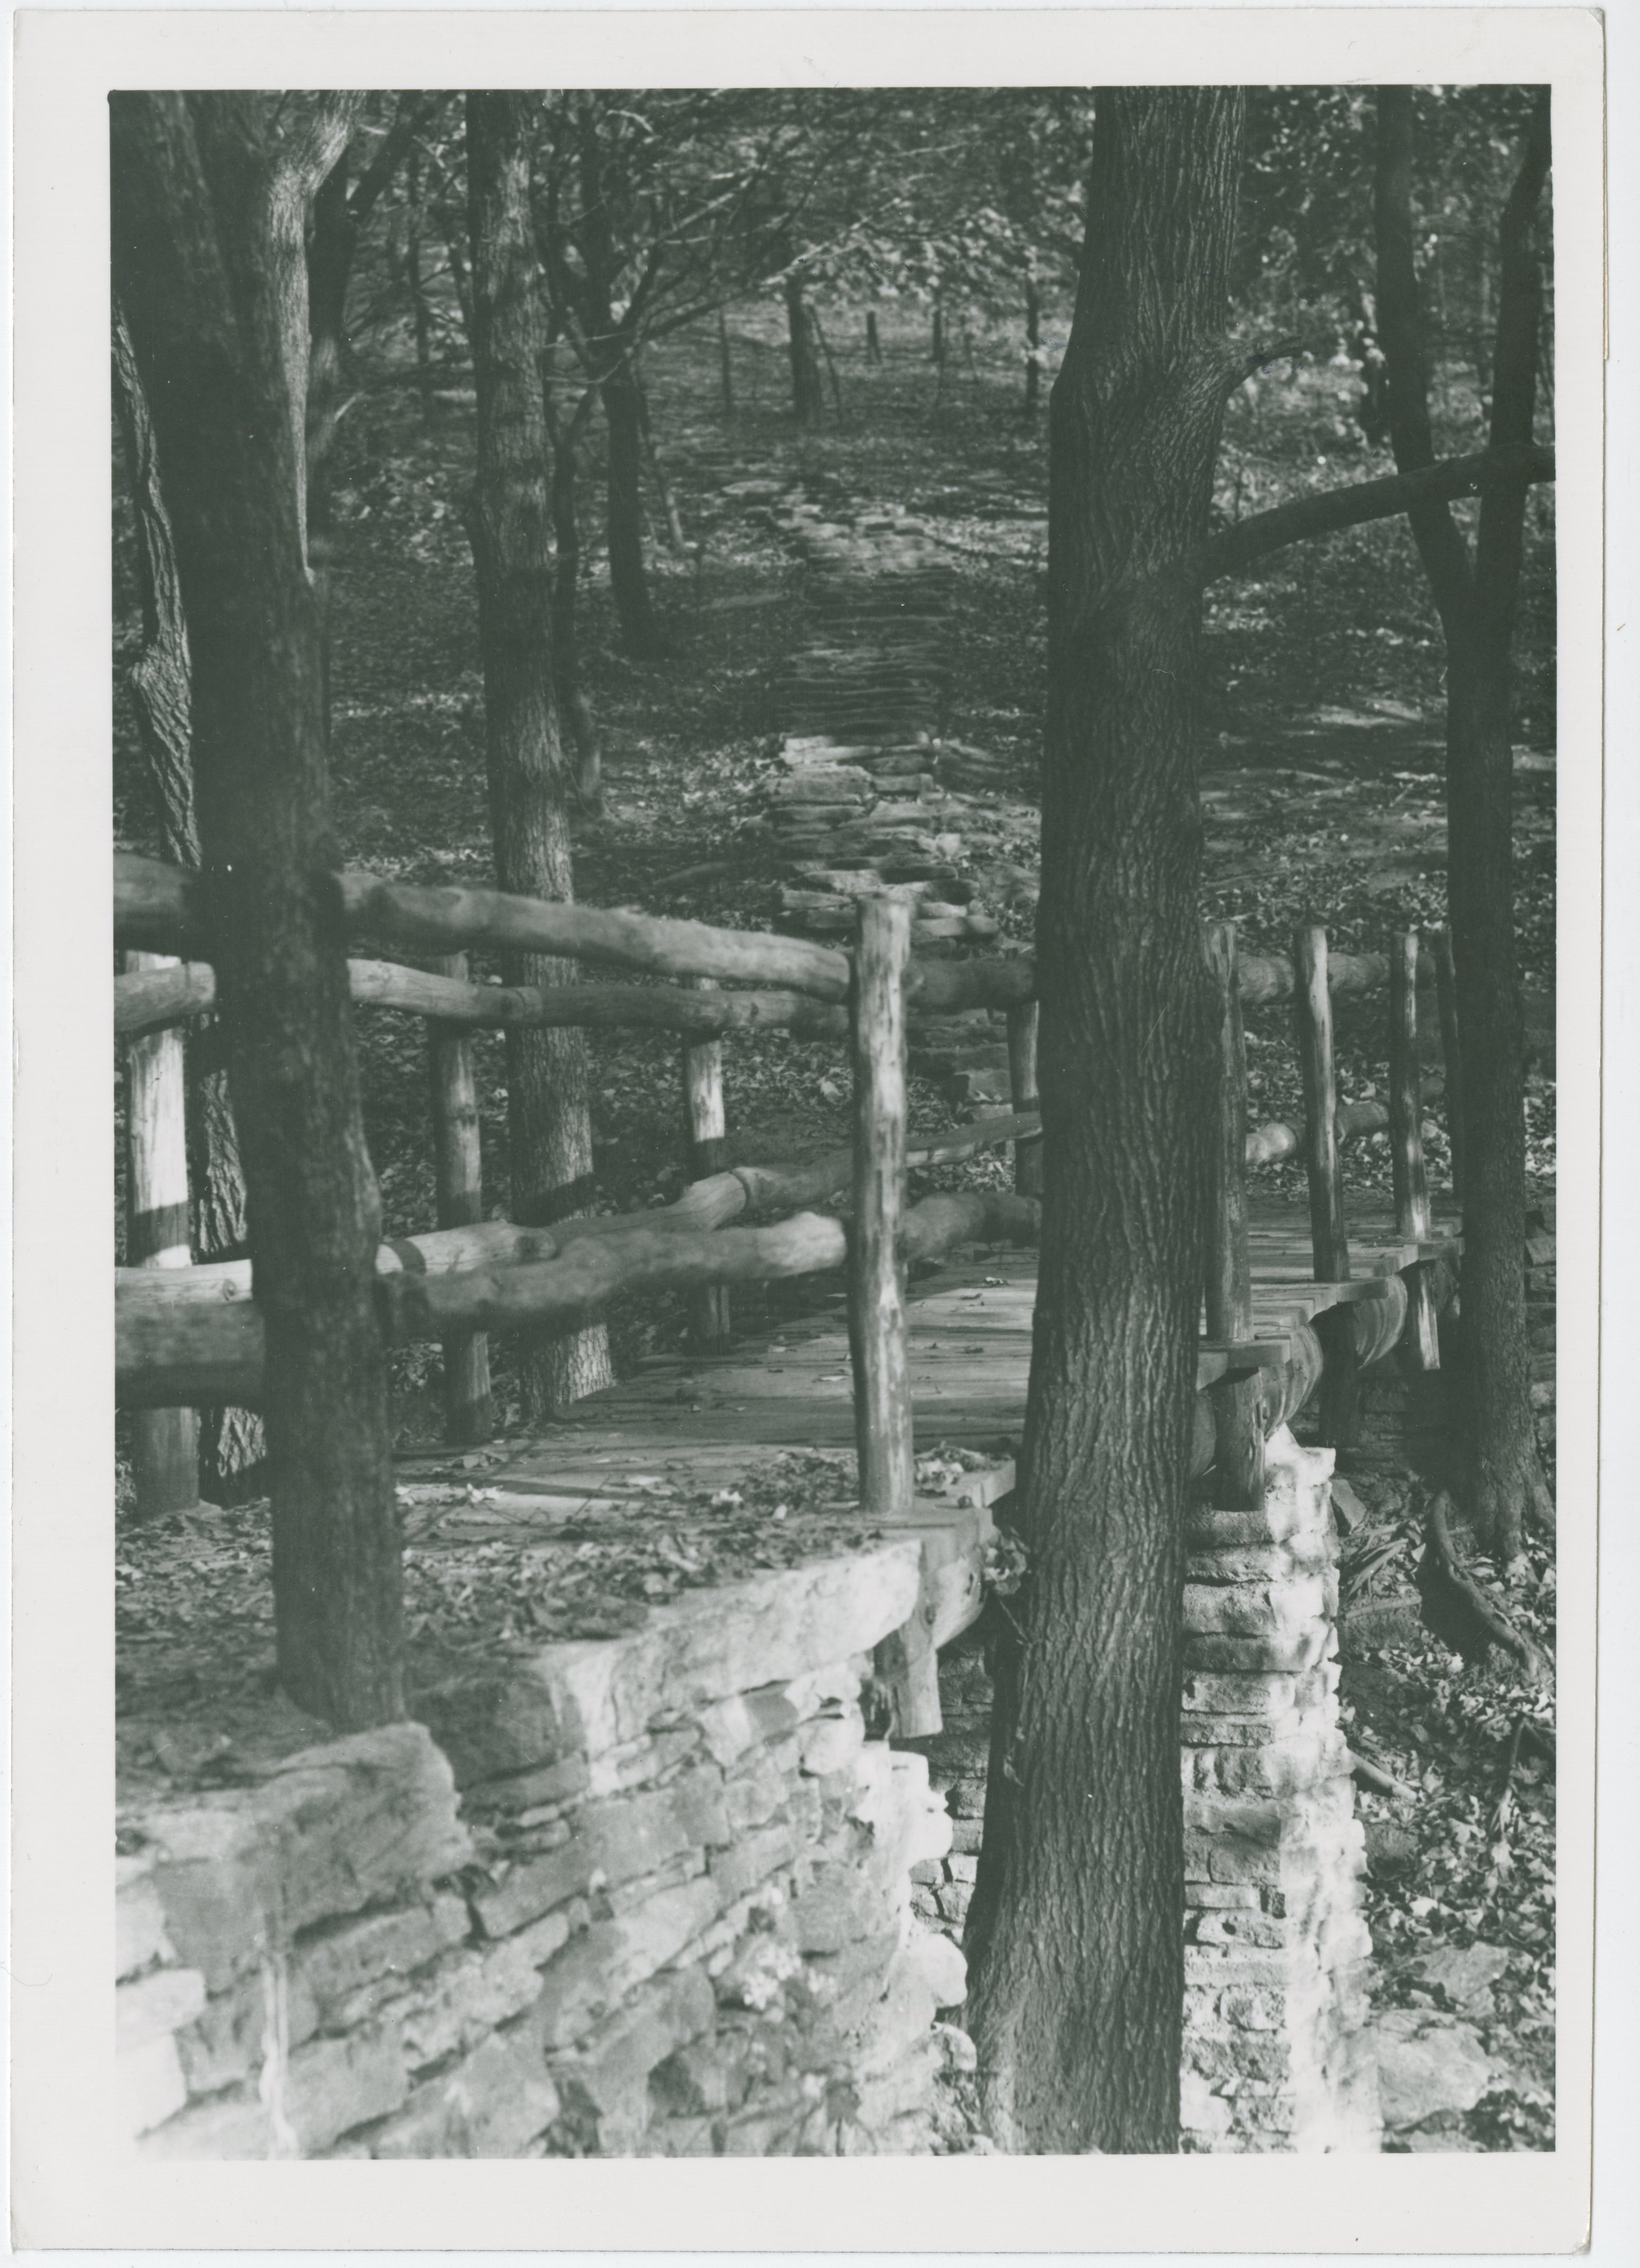 Woodland Trail in Mt. Echo Park, 1930s